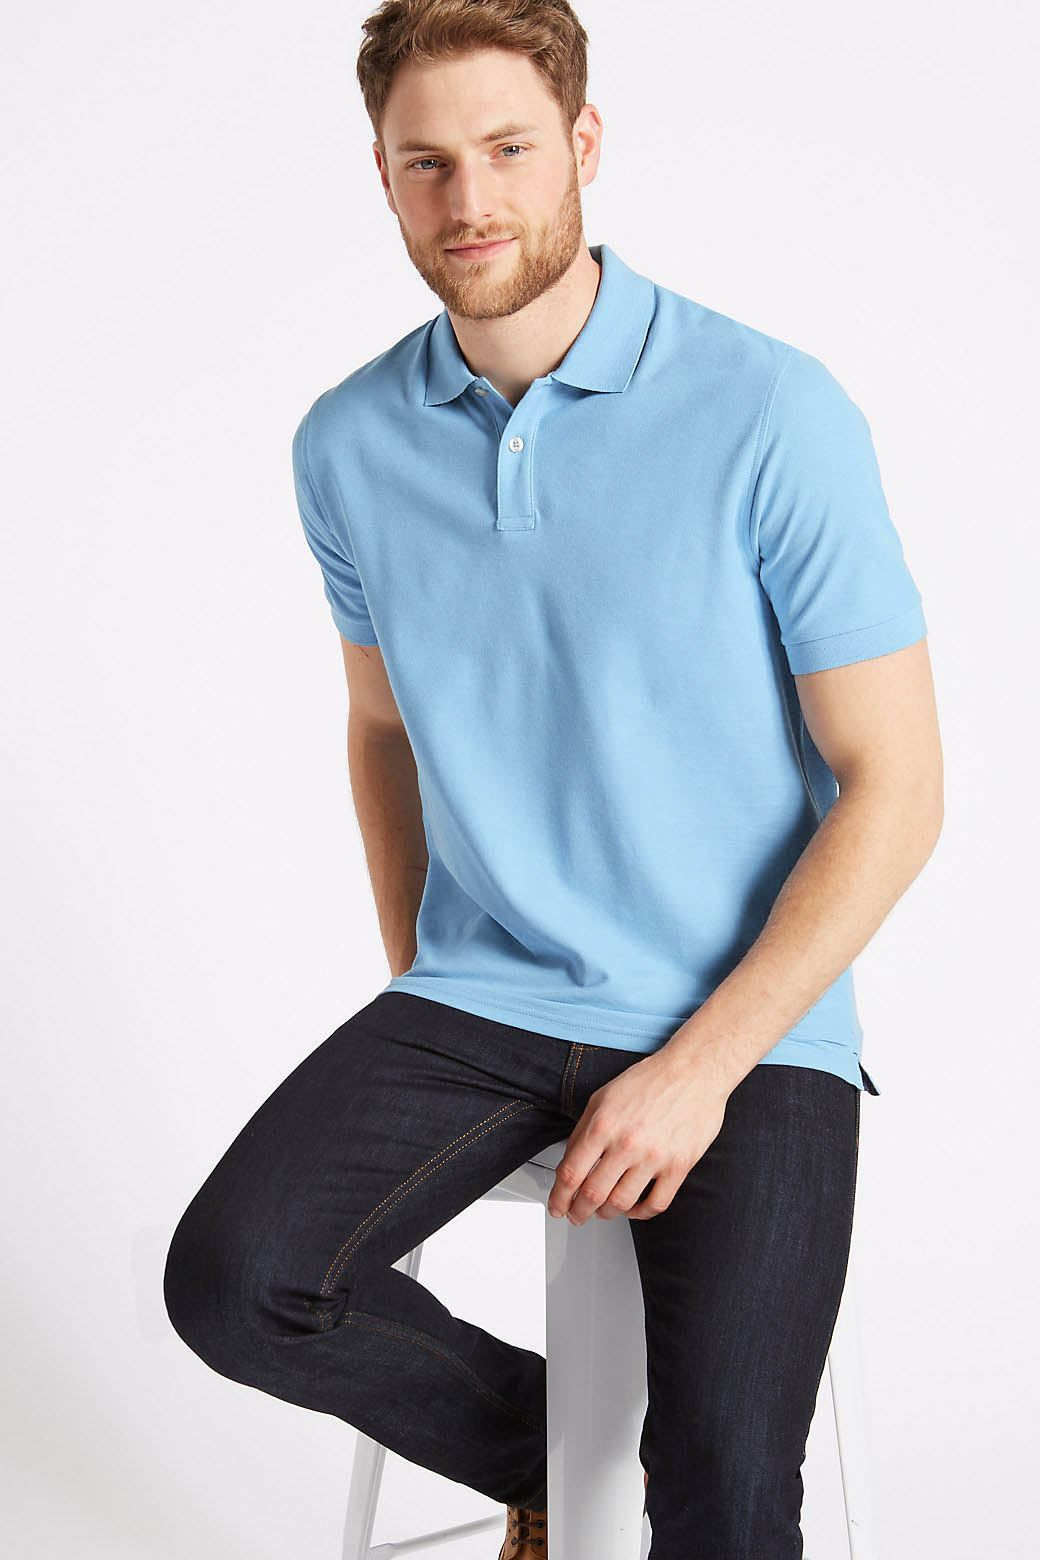 MARKS-amp-SPENCER-Mens-Classic-Cotton-Polo-Shirt-M-amp-S-All-Colours-and-Large-Sizes thumbnail 20